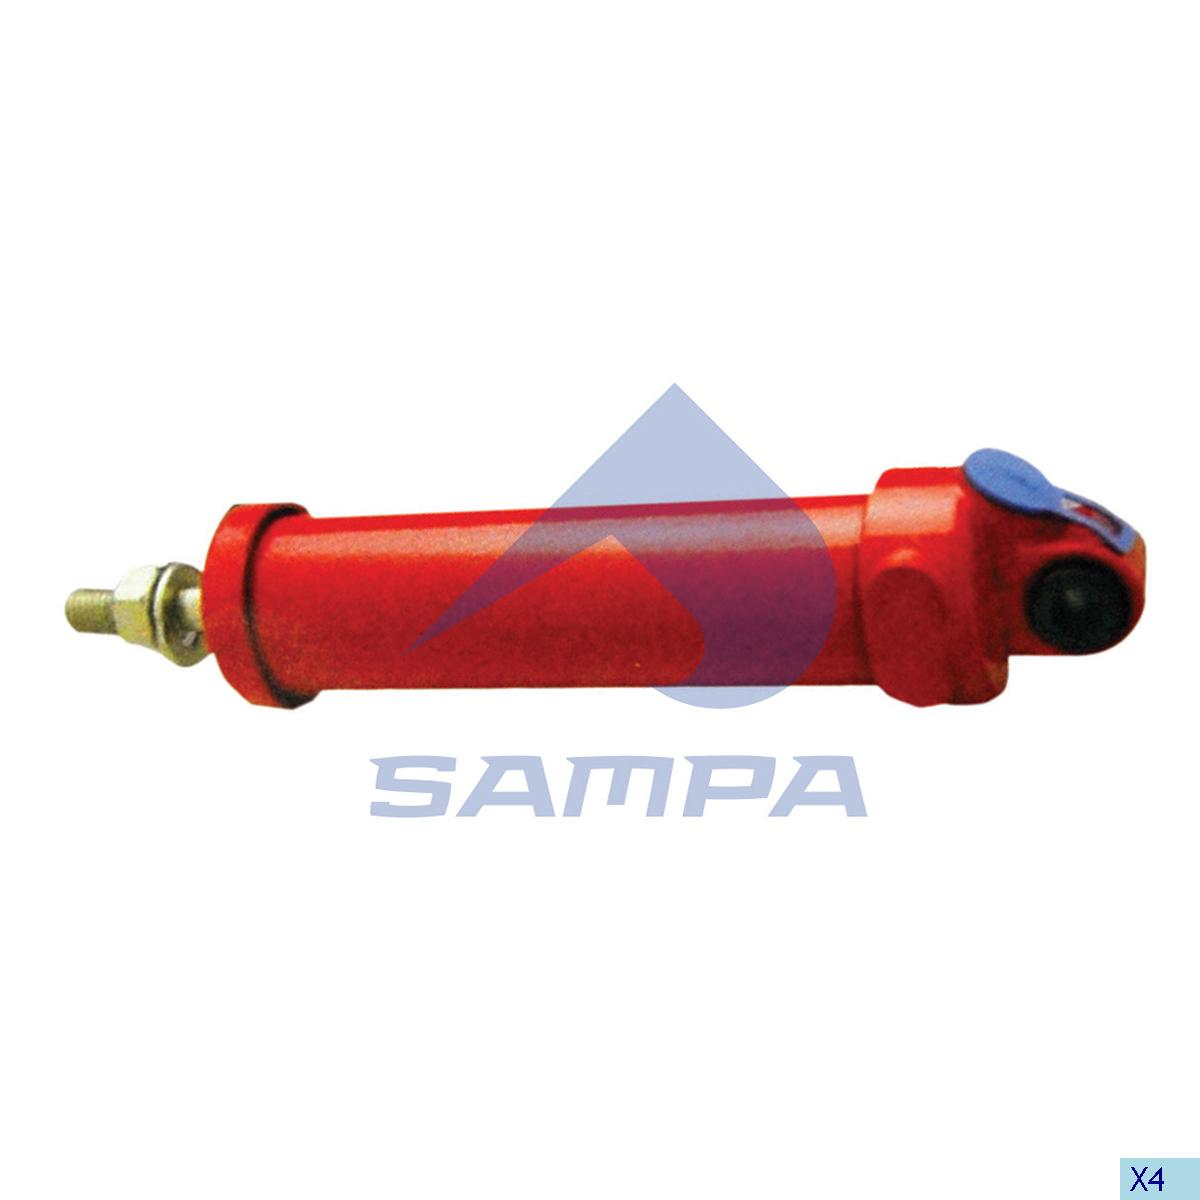 Cylinder, Injection Pump, Universal, Engine